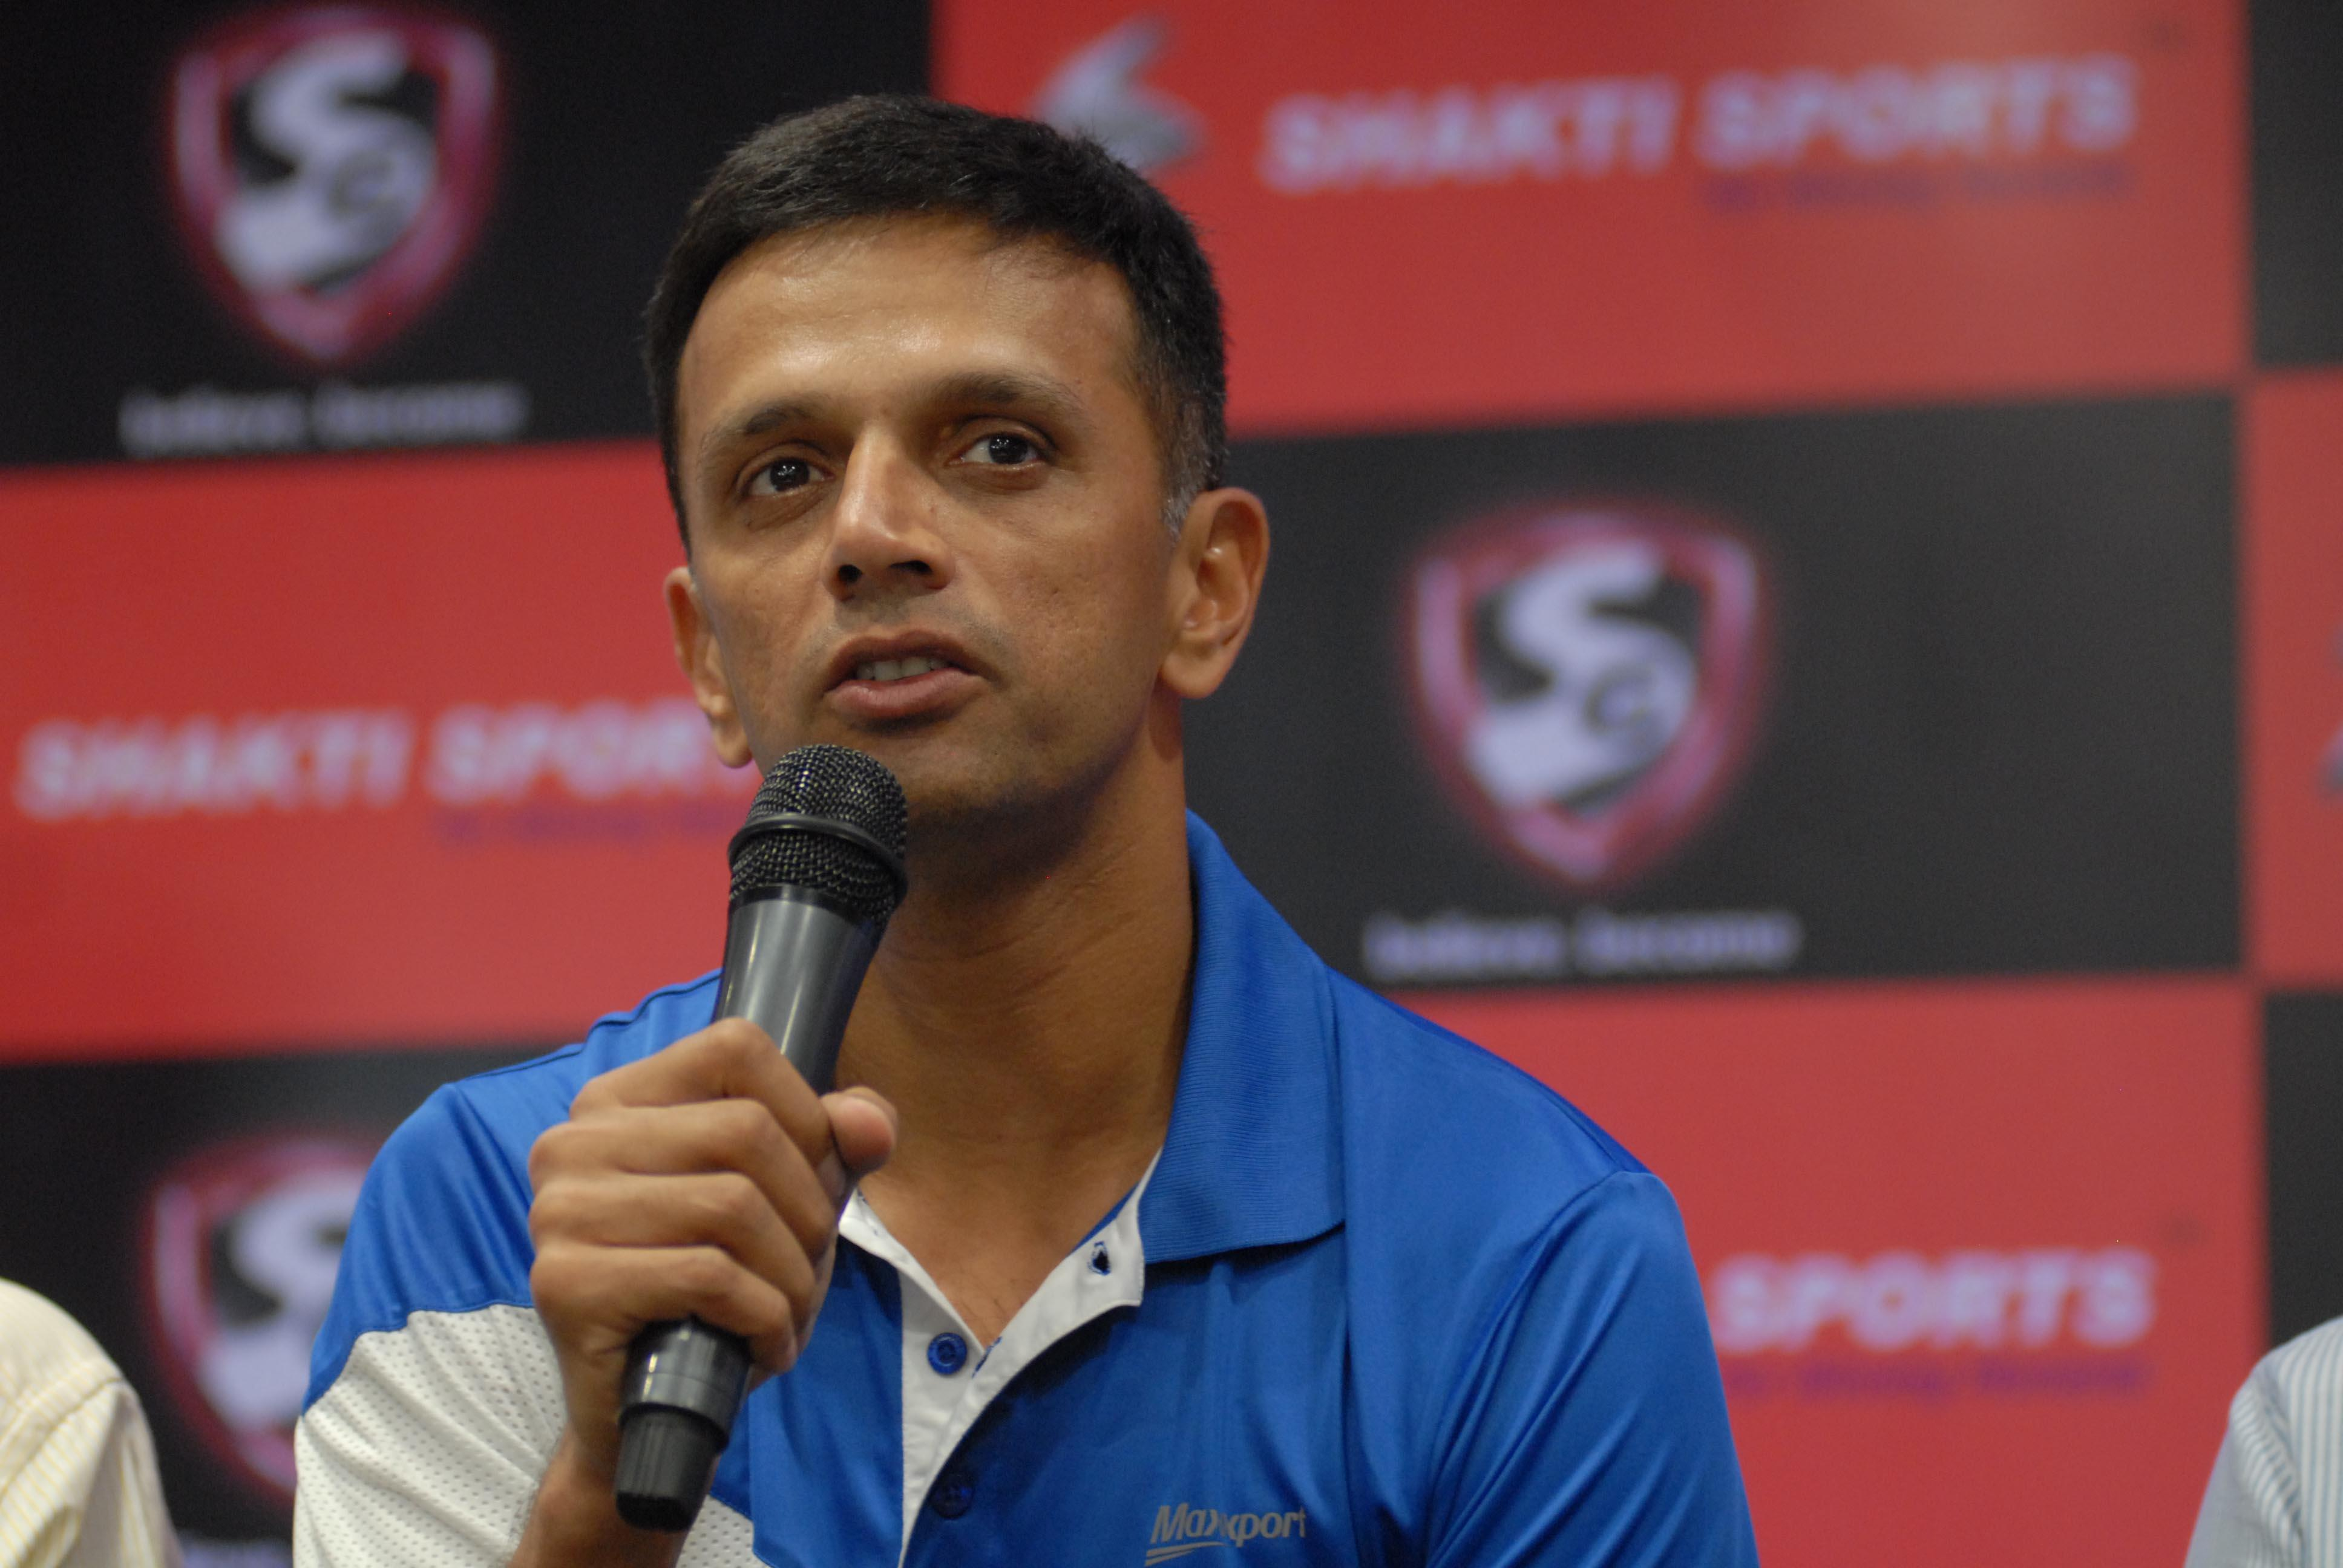 Dravid not on electoral rolls in Bengaluru: Official